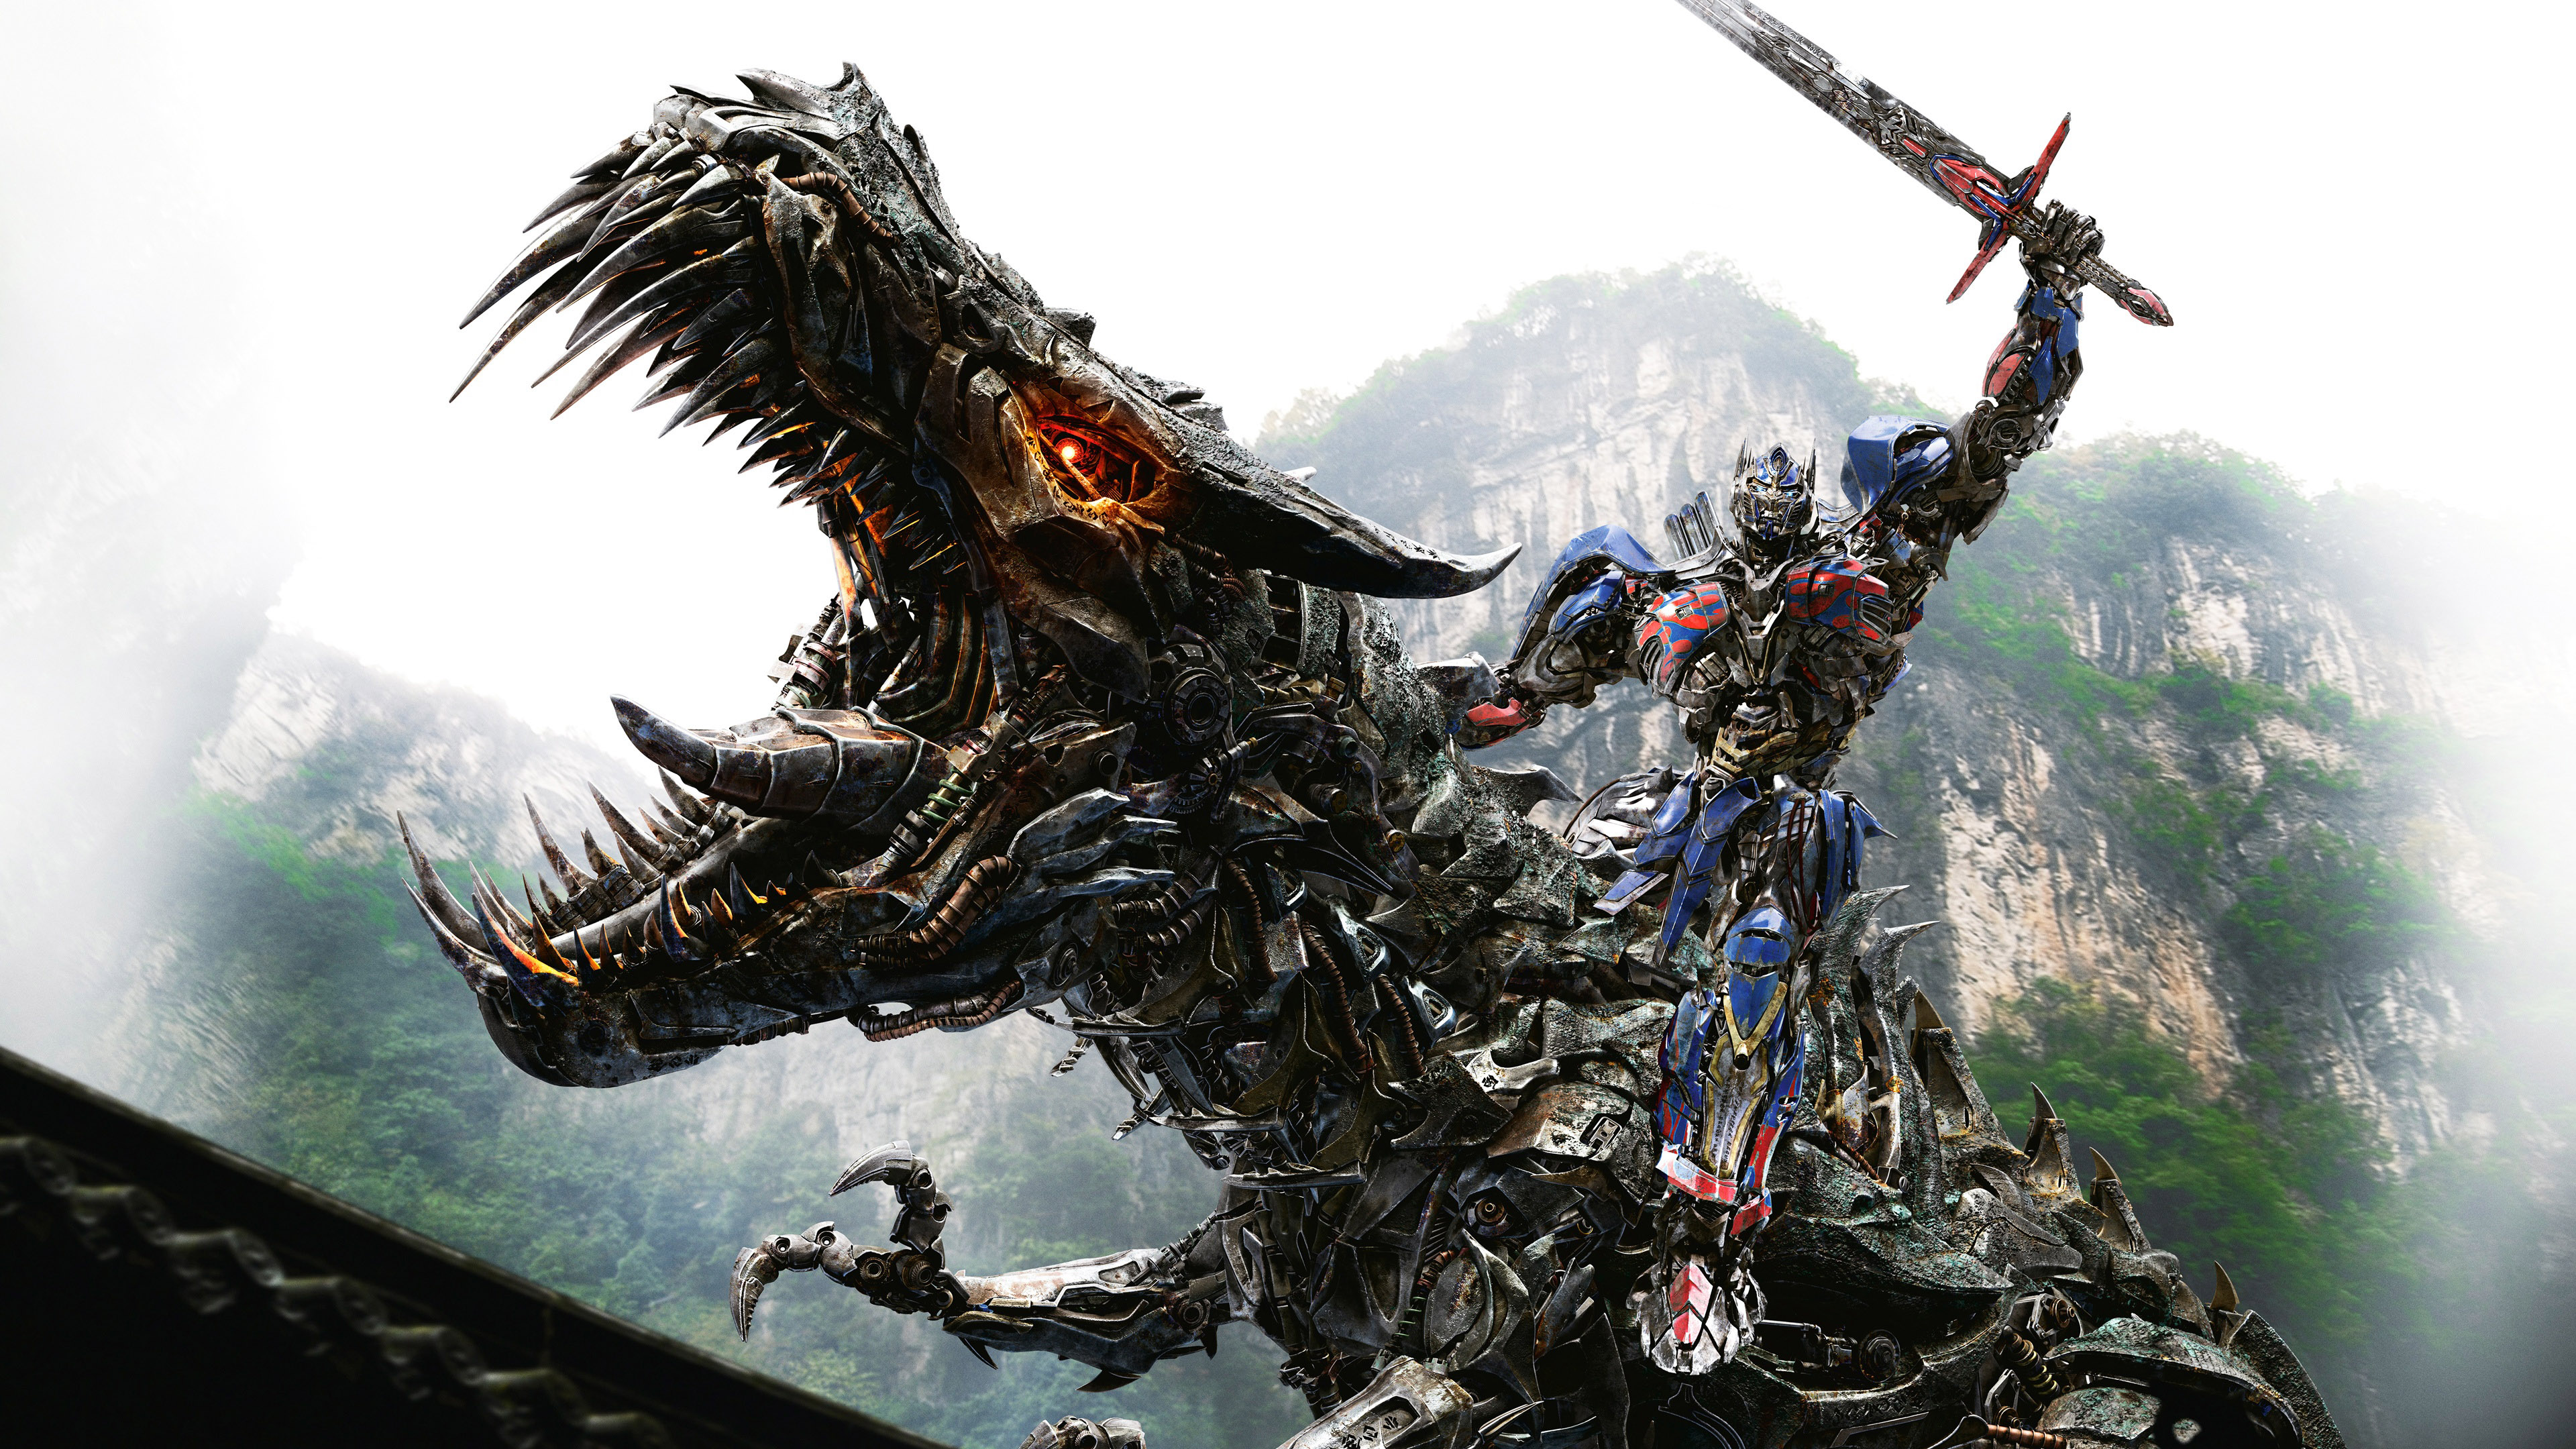 transformers 4 characters